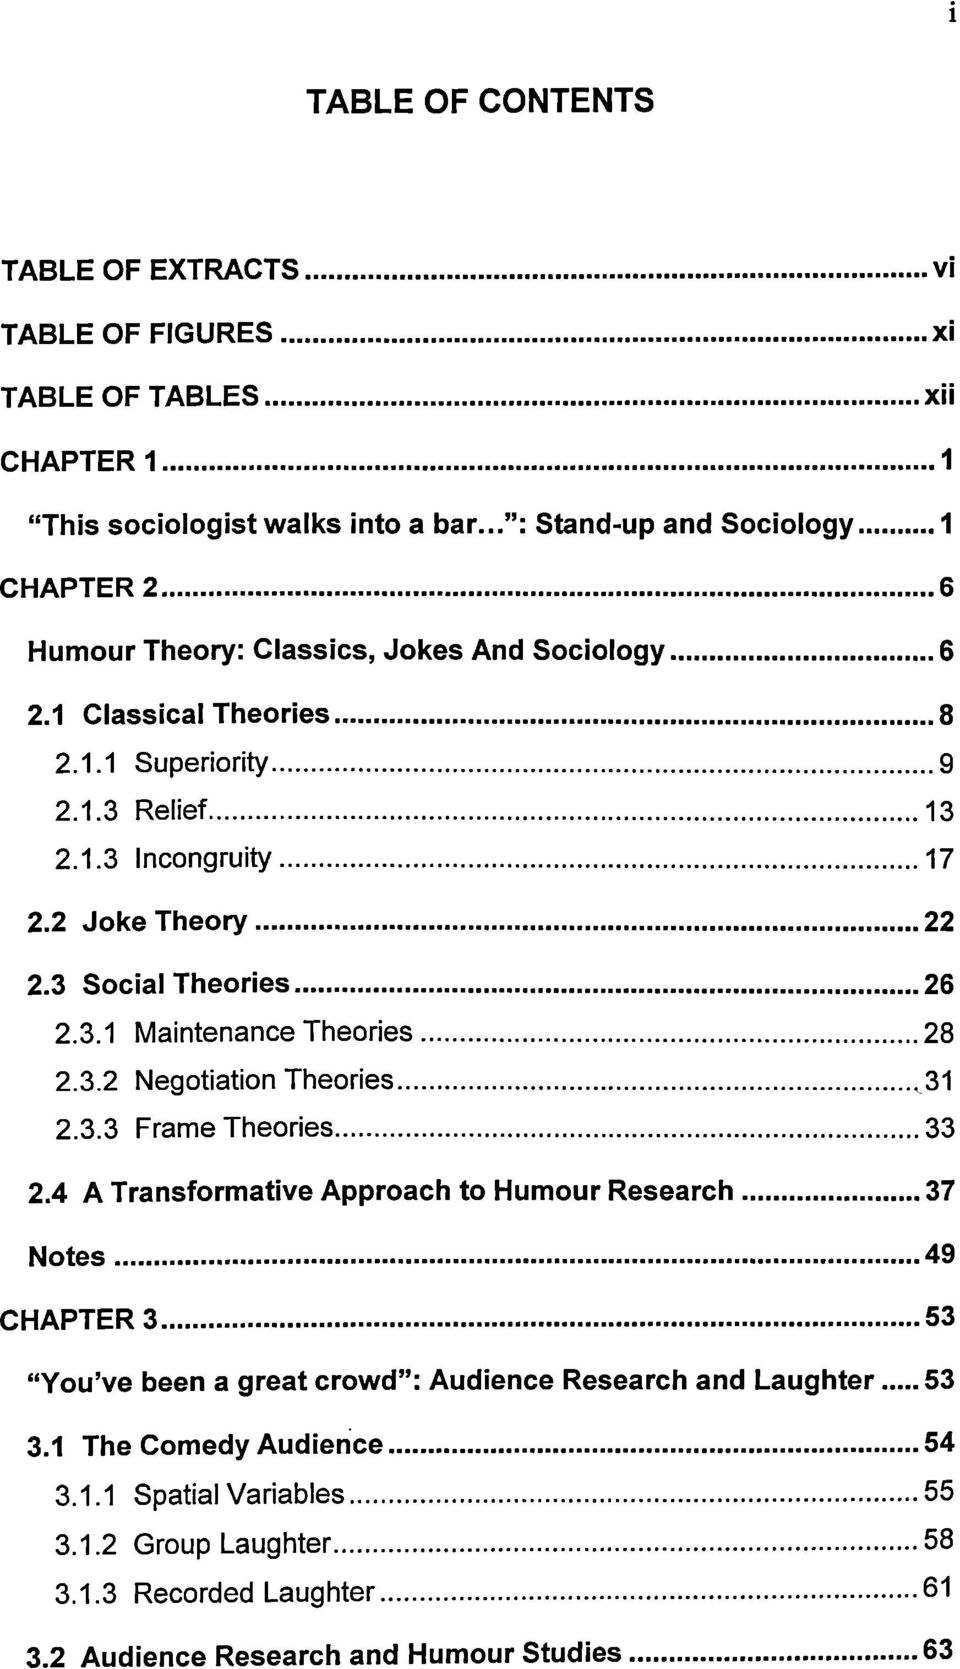 .. 26 2.3.1 Maintenance Theories...28 2.3.2 Negotiation Theories...31 2.3.3 Frame Theories...33 2.4 A Transformative Approach to Humour Research... 37 Notes... 49 CHAPTER3.